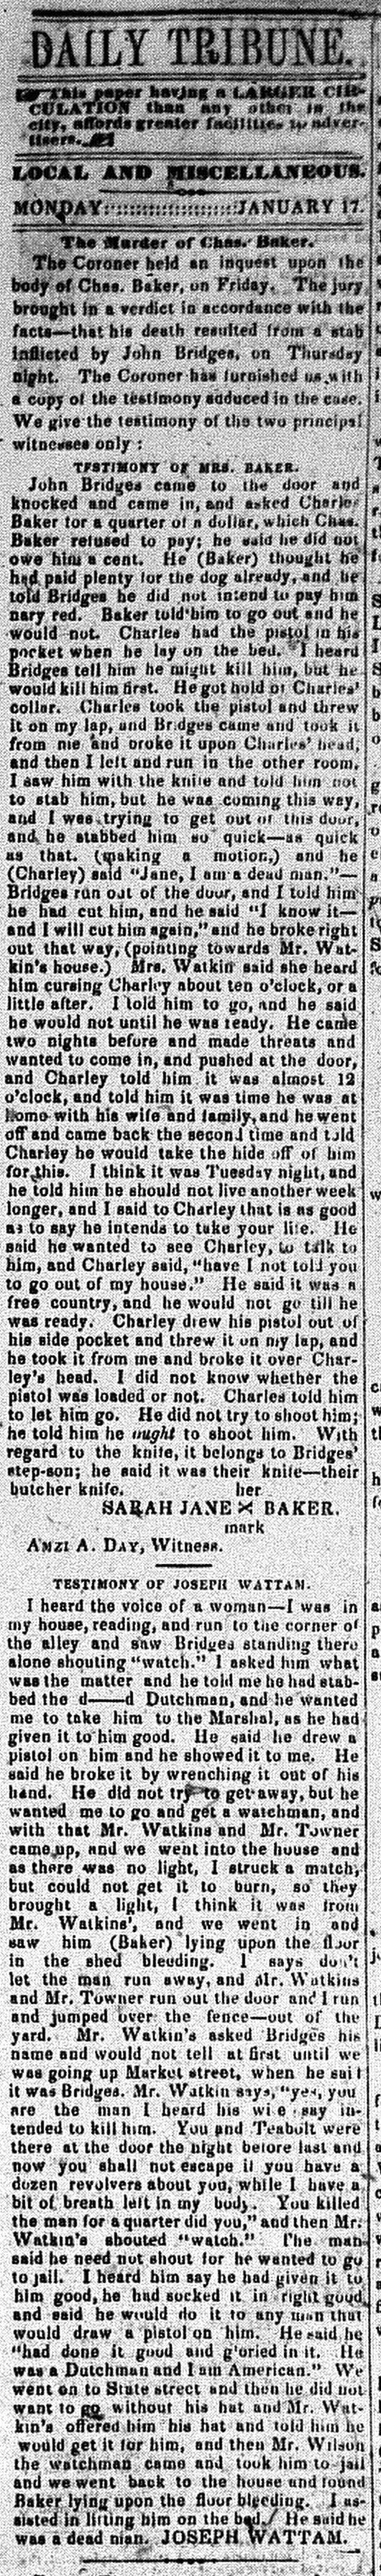 New Albany Daily Tribune, 17 Jan 1859, p.3, c.1, Stuart Barth Wrege Indiana History Room